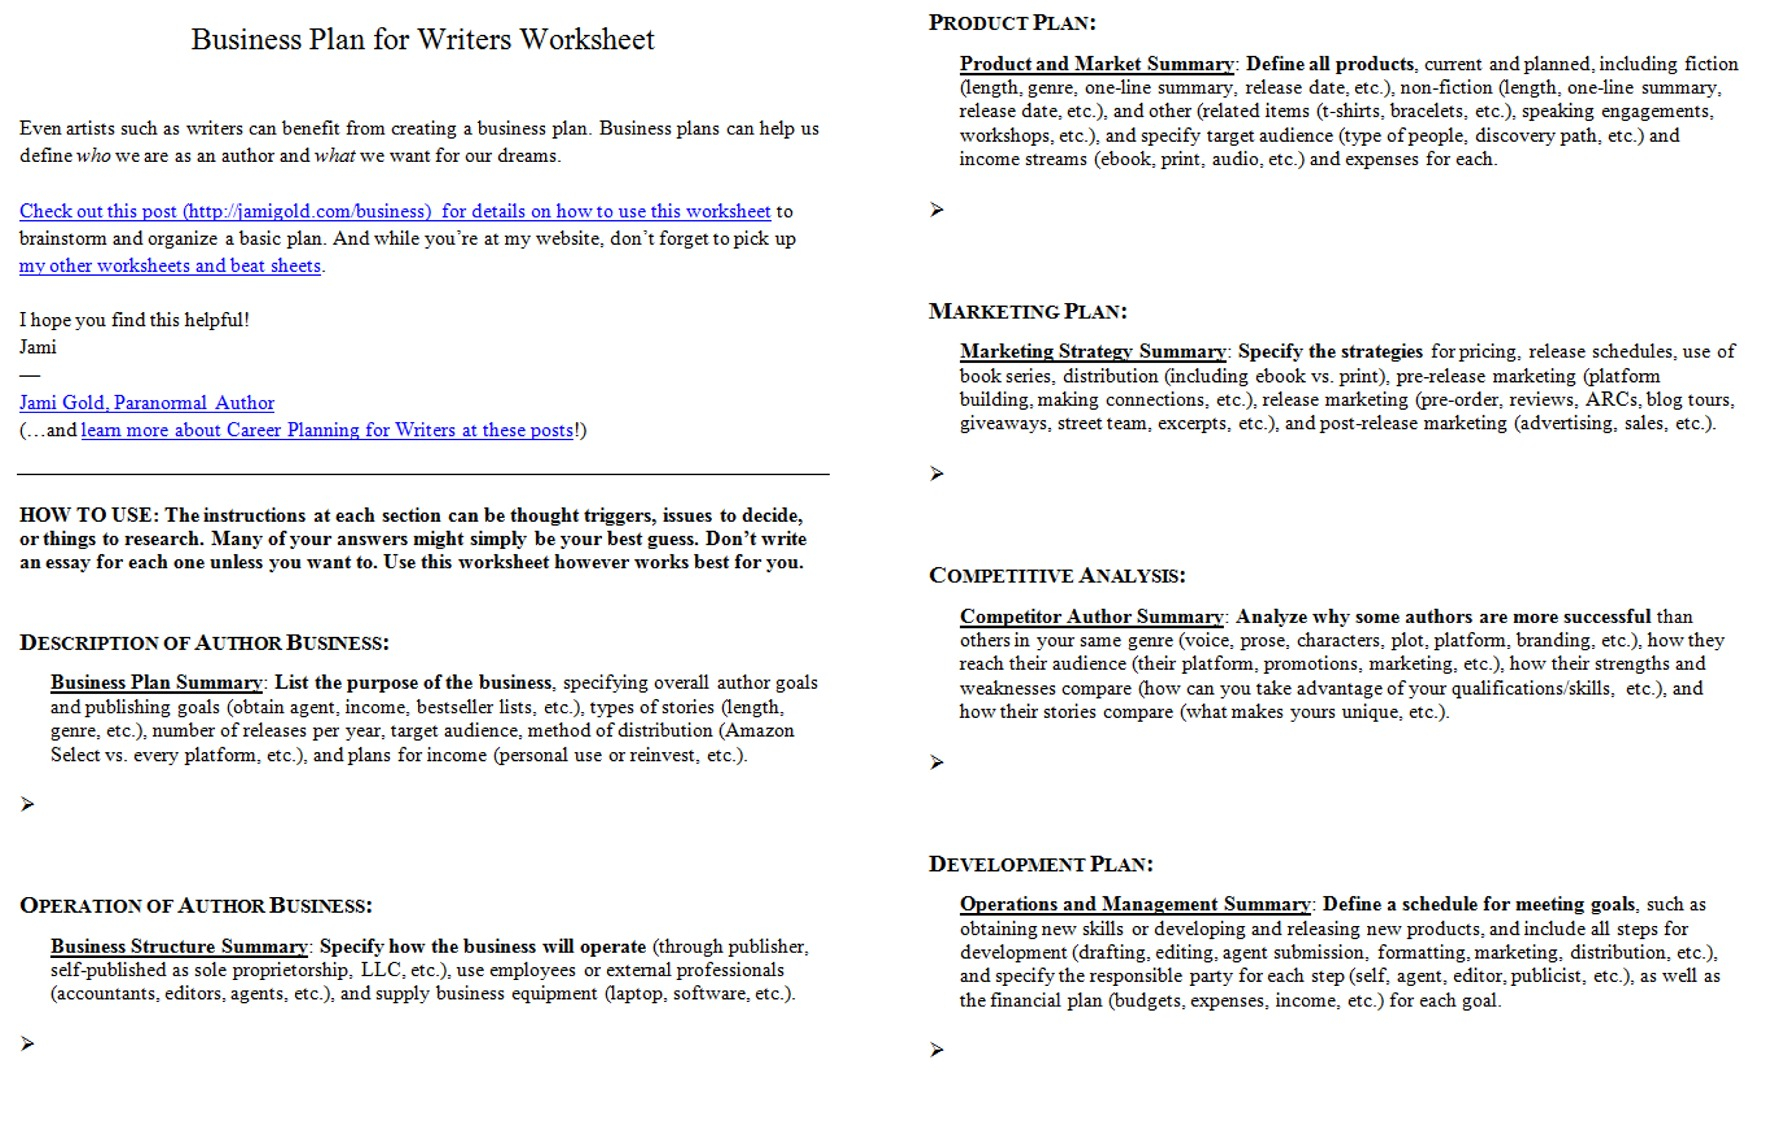 Aldiablosus  Winsome Worksheets For Writers  Jami Gold Paranormal Author With Exciting Screen Shot Of Both Pages Of The Business Plan For Writers Worksheet With Charming Evaluate Algebraic Expressions Worksheet Also Context Clue Worksheet In Addition Grammar And Punctuation Worksheets And Multiplication Chart Worksheet As Well As Division Decimals Worksheets Additionally Thesaurus Worksheets From Jamigoldcom With Aldiablosus  Exciting Worksheets For Writers  Jami Gold Paranormal Author With Charming Screen Shot Of Both Pages Of The Business Plan For Writers Worksheet And Winsome Evaluate Algebraic Expressions Worksheet Also Context Clue Worksheet In Addition Grammar And Punctuation Worksheets From Jamigoldcom